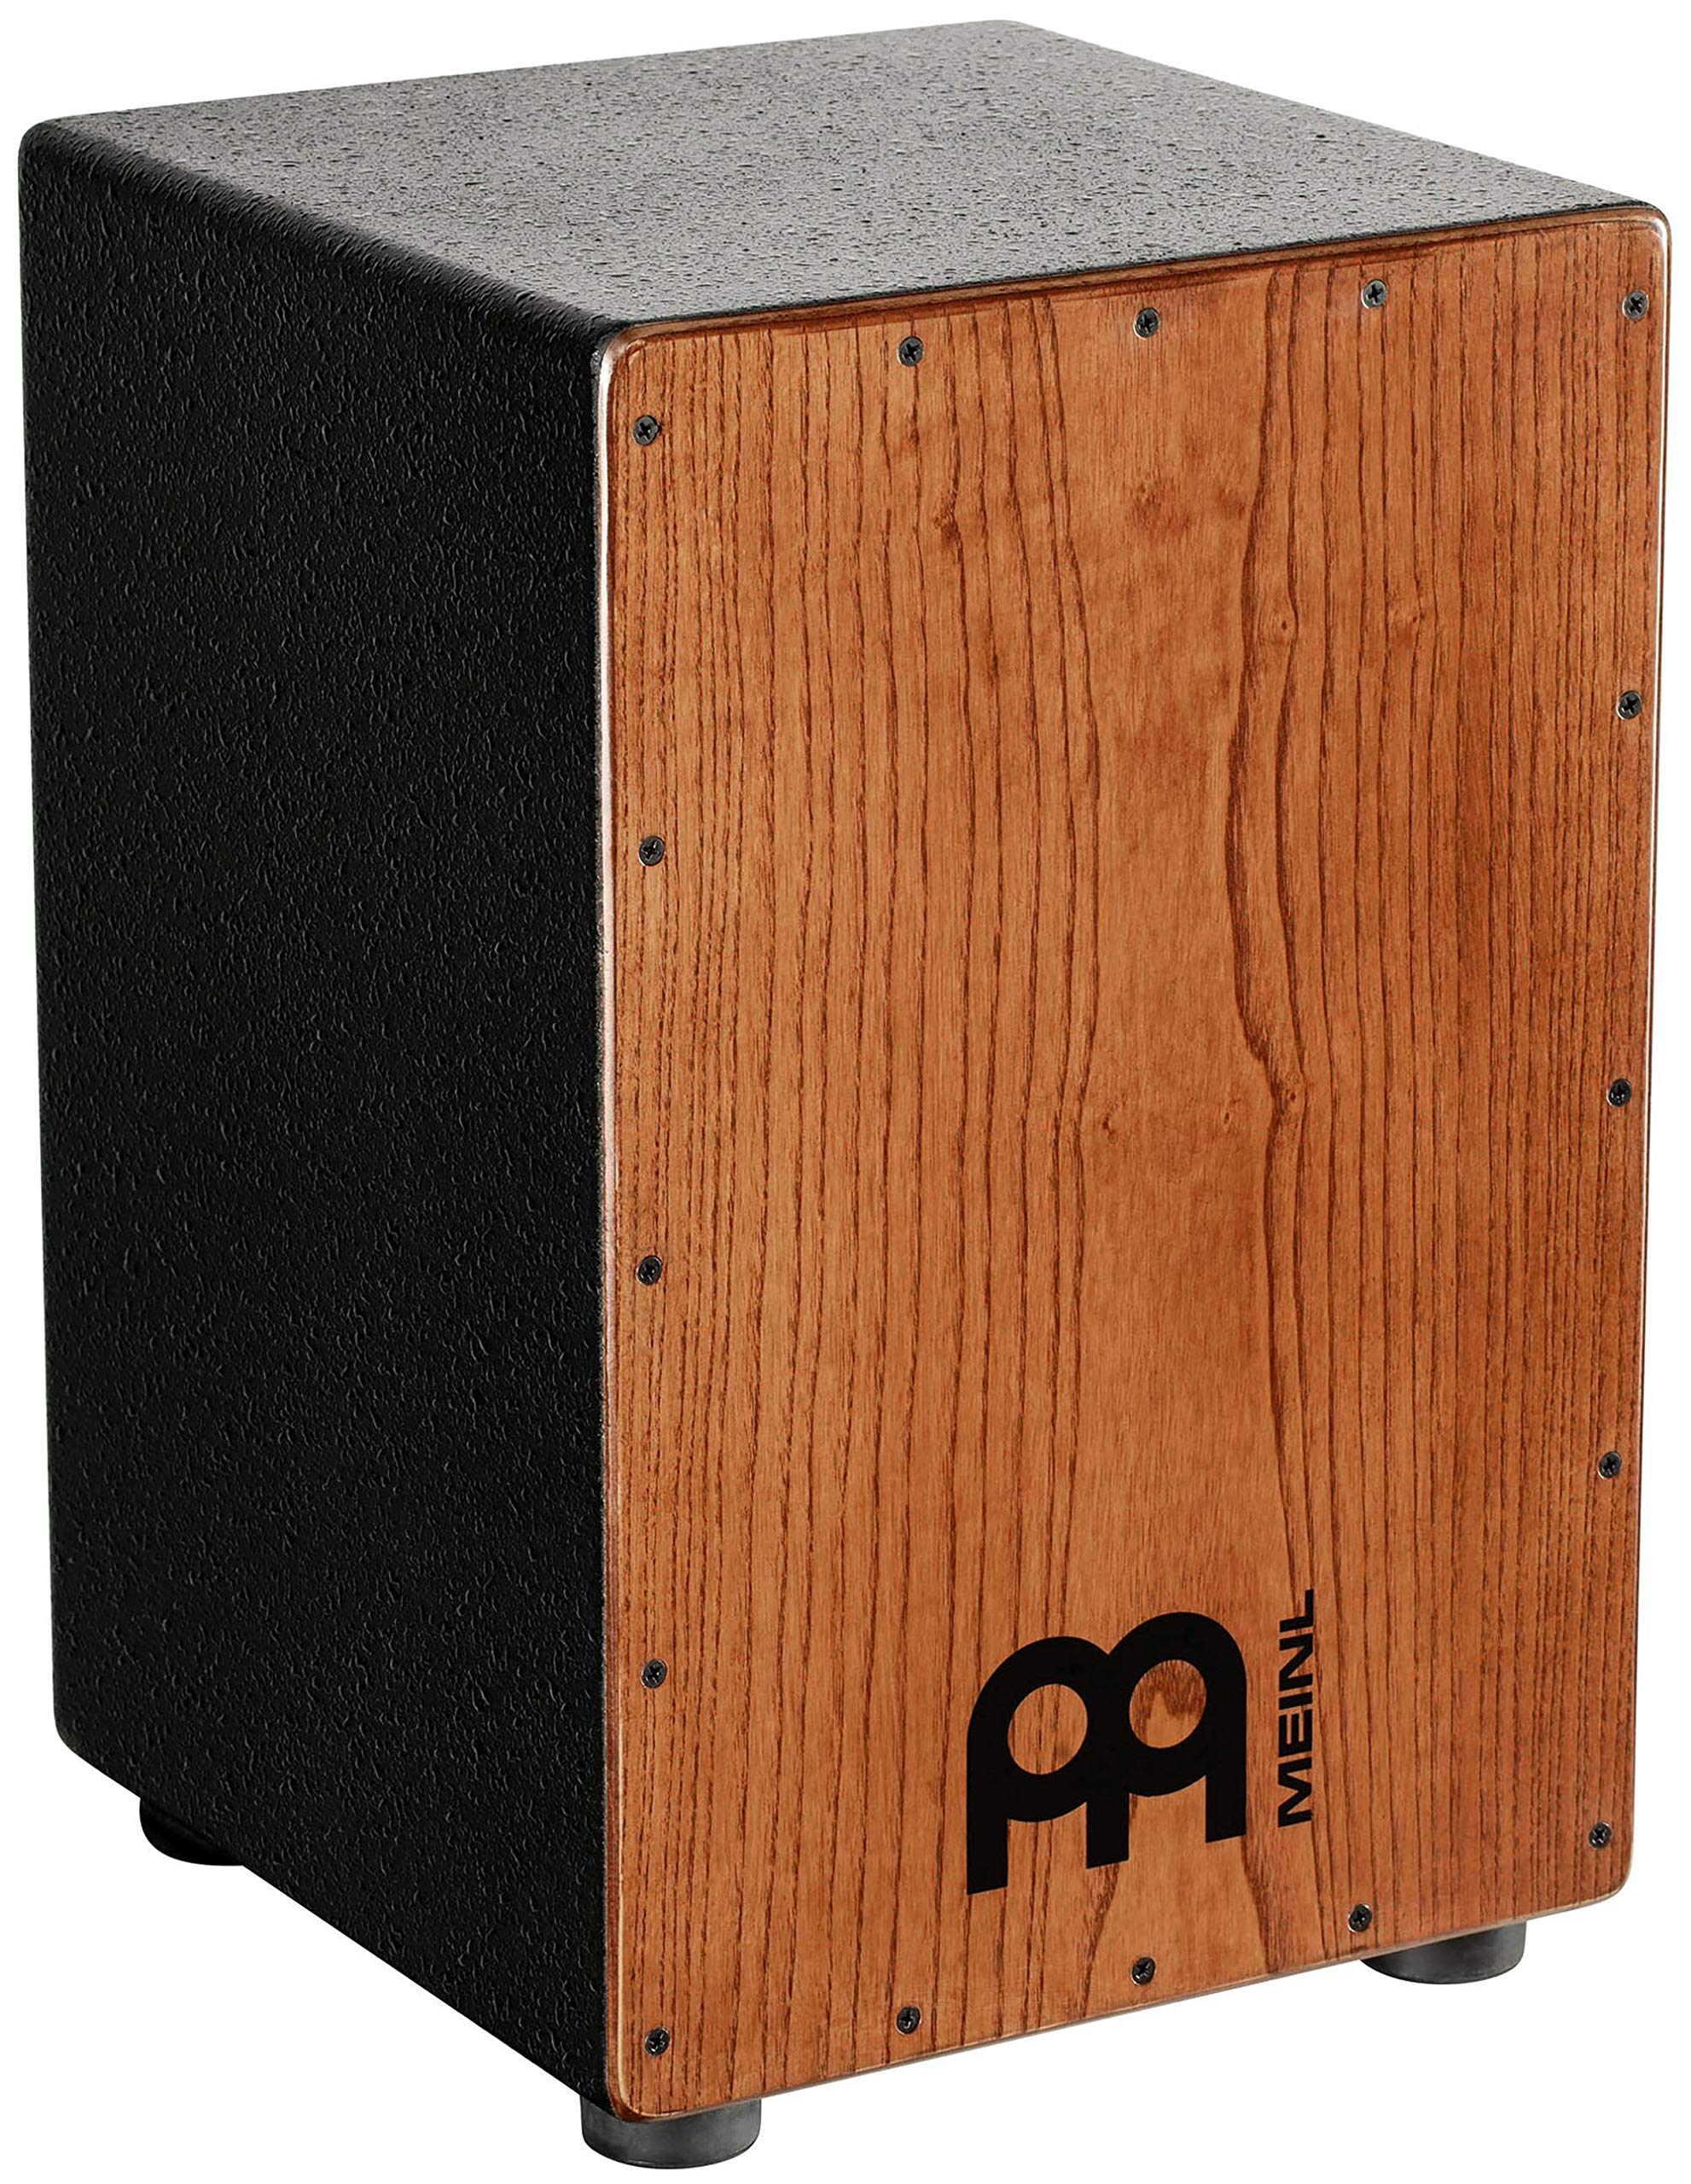 Meinl Percussion Cajon with Internal Metal Strings for Adjustable Snare Effect - NOT MADE IN CHINA - American White Ash with MDF Body, 2-YEAR WARRANTY HCAJ1AWA